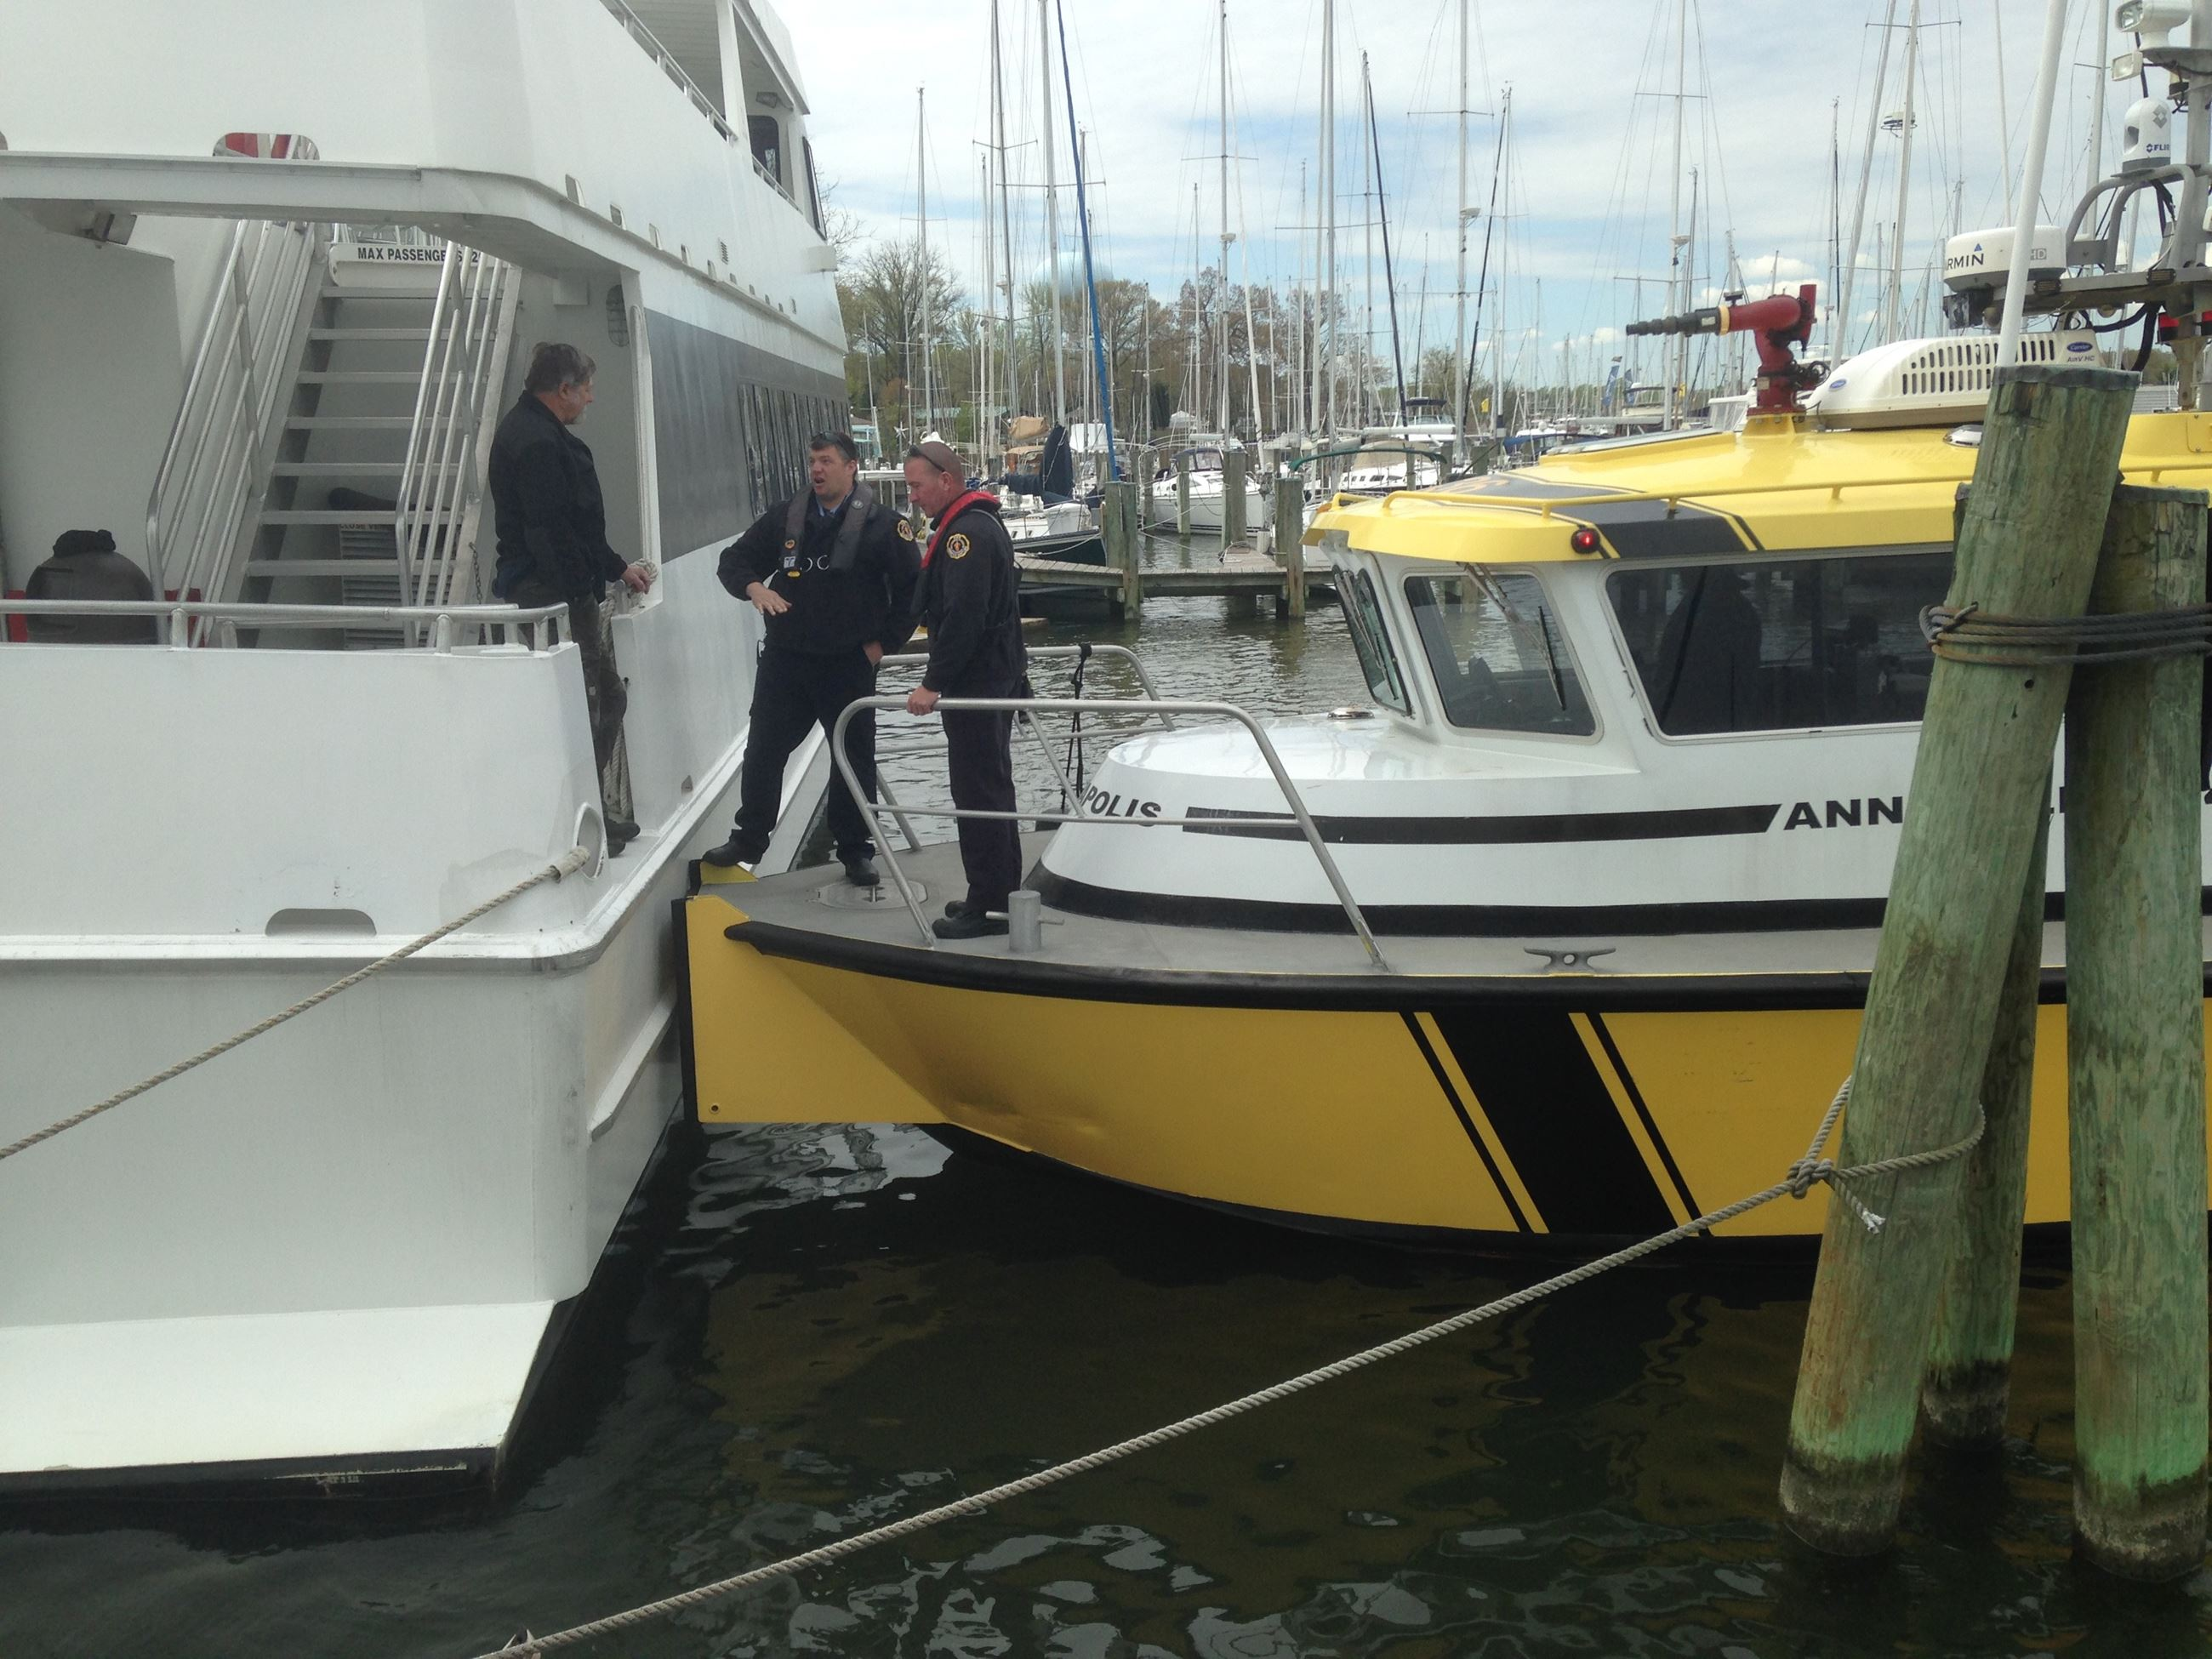 Three fire fighters boarding a boat.